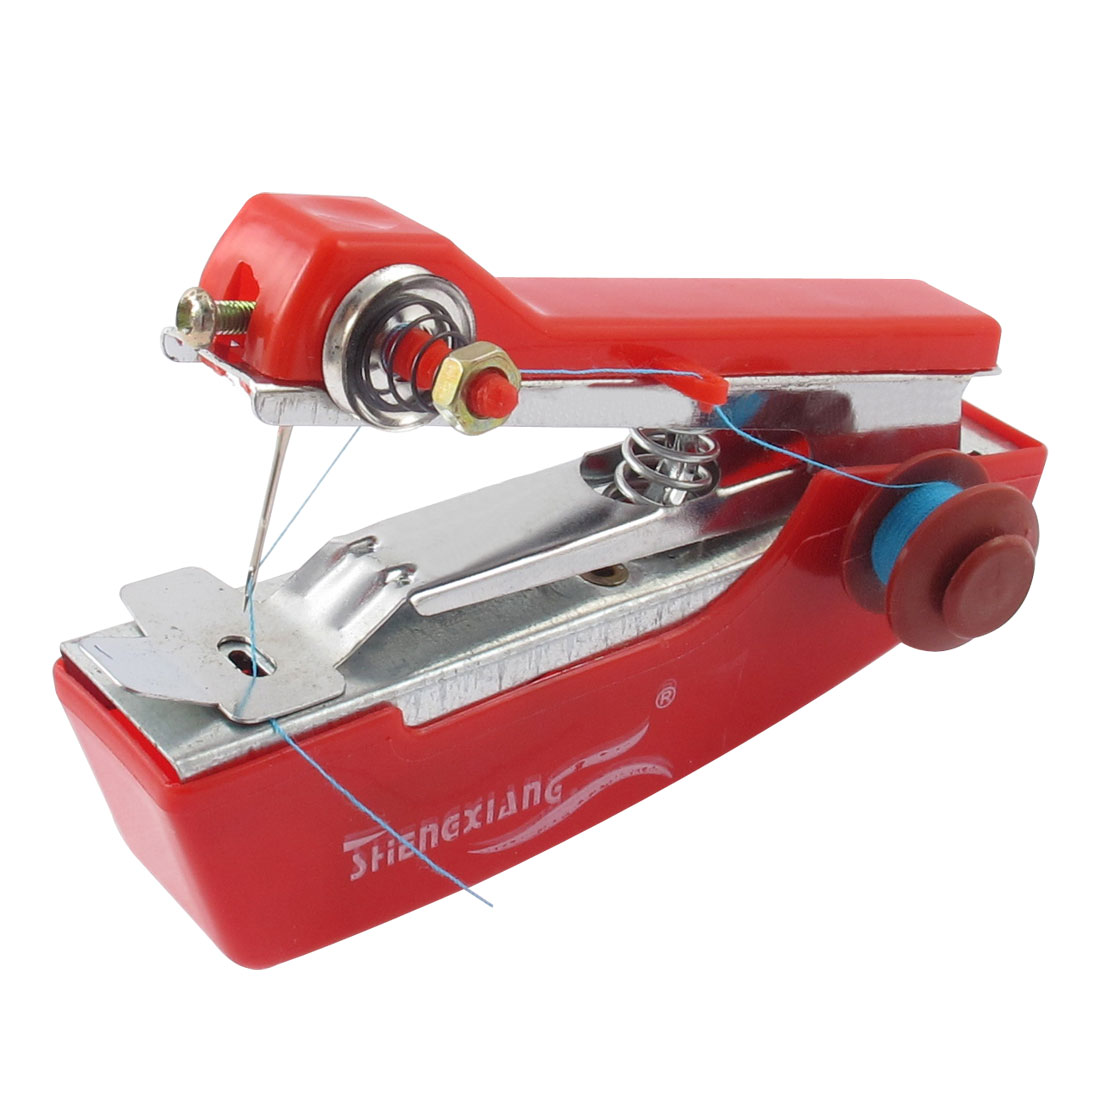 Home Portable Mini Handy Clothes Fabric Handheld Sewing Machine Red